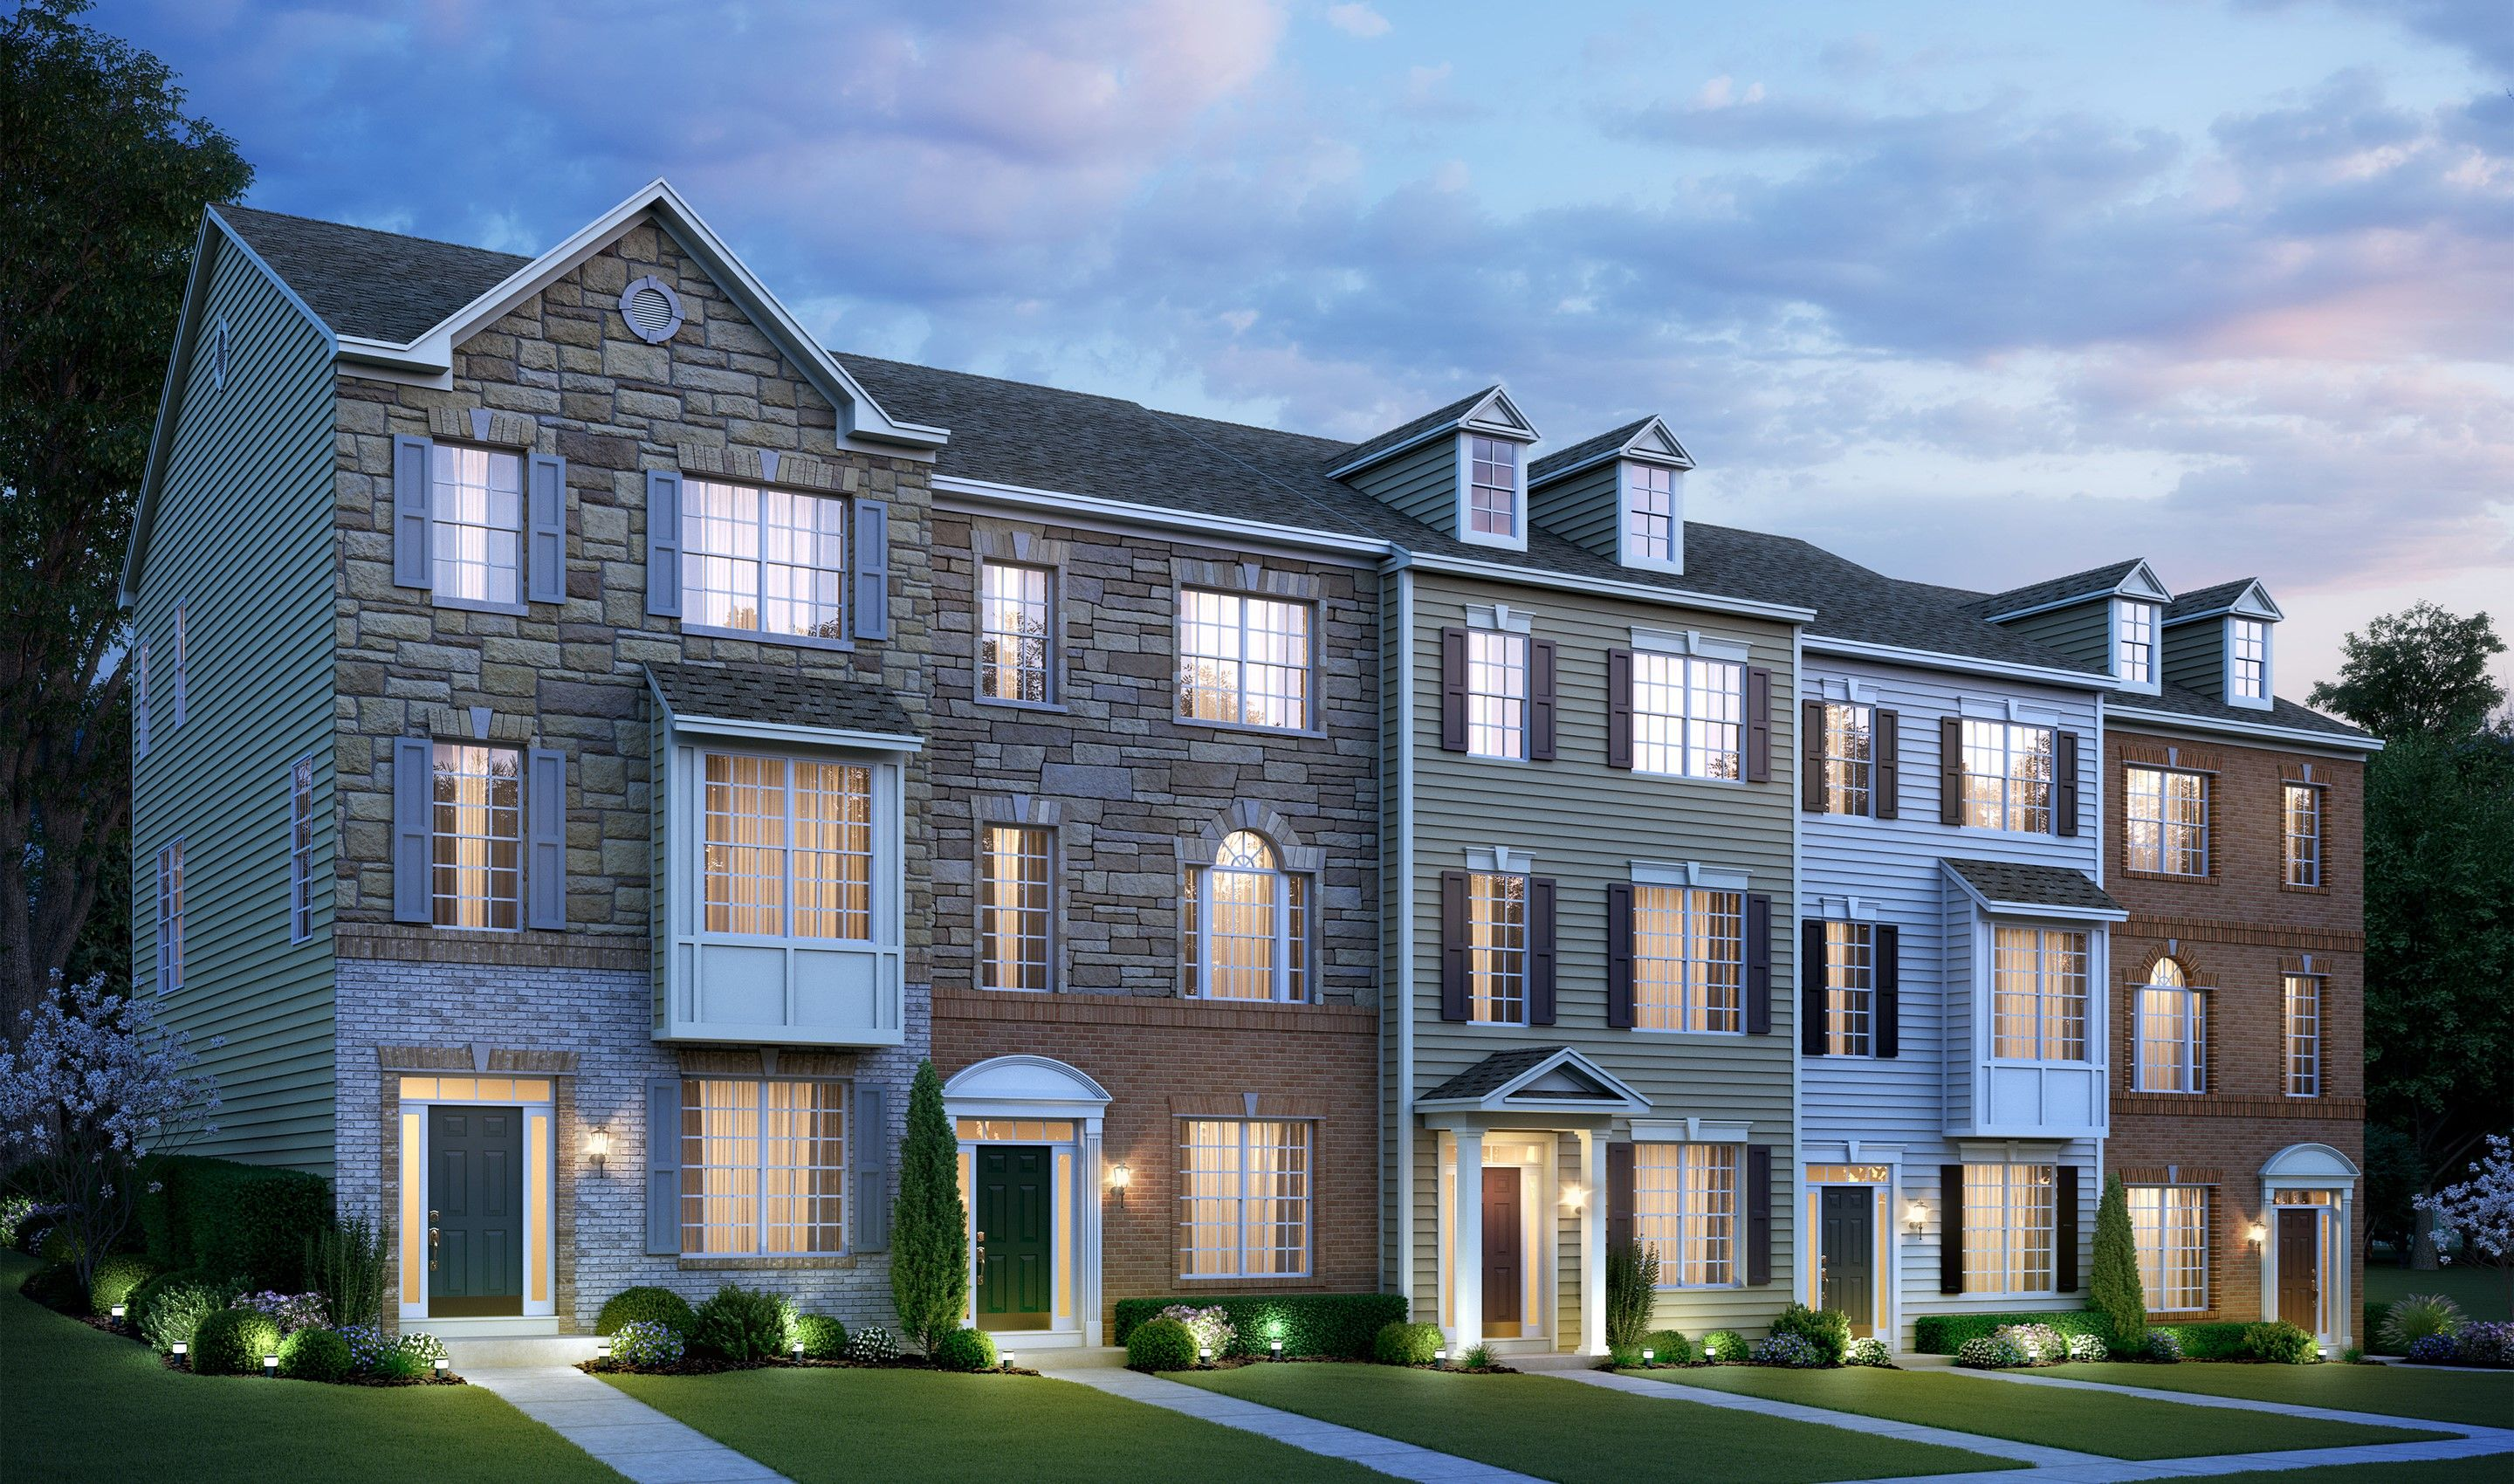 Real Estate at 2895 Findley Road, Homesite 11, Kensington in Montgomery County, MD 20895